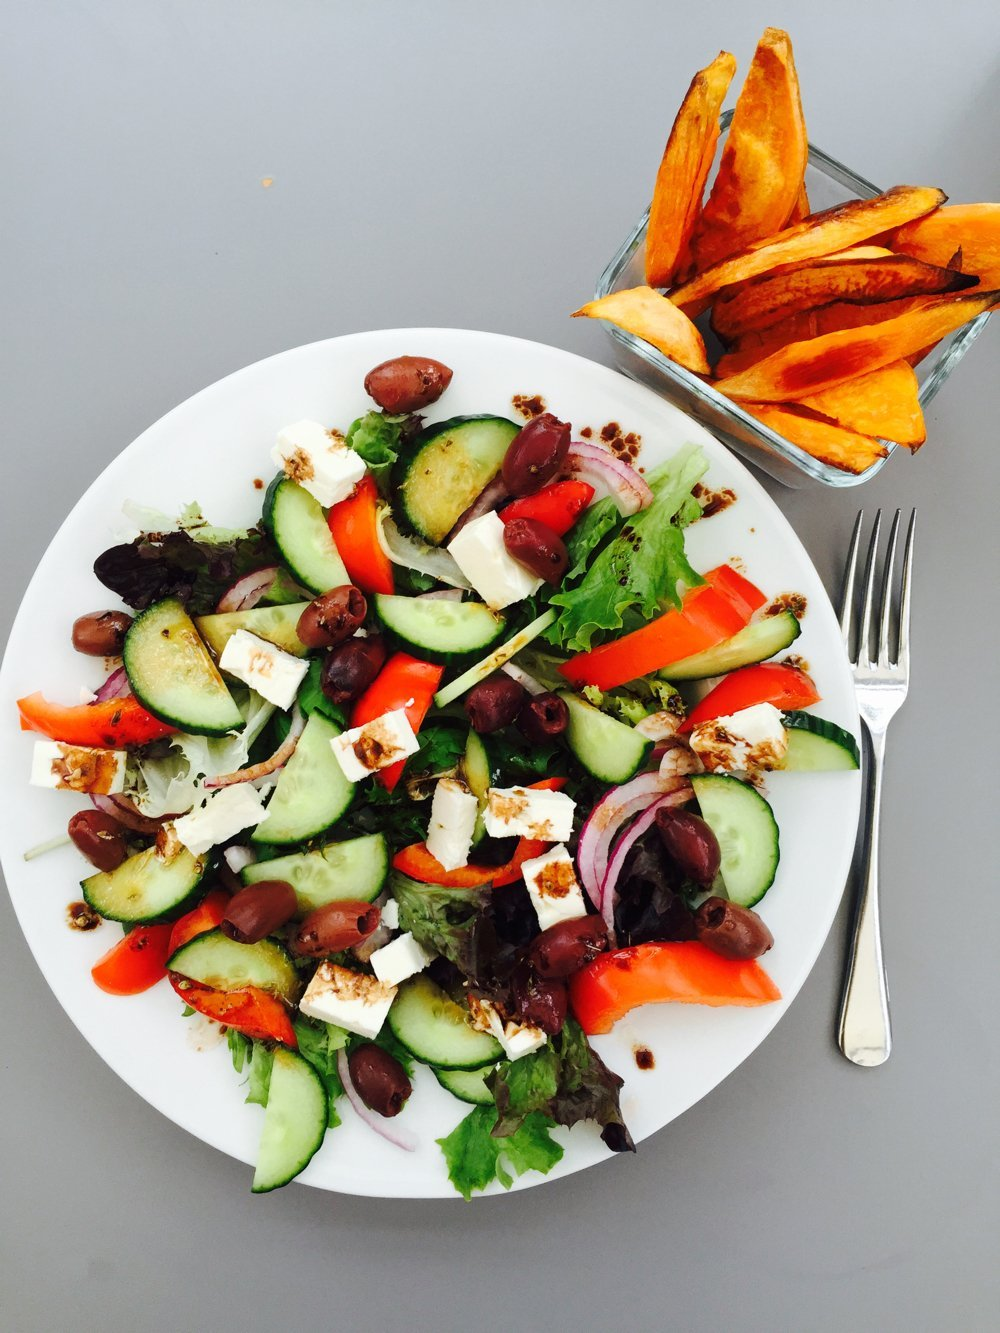 Awesome Greek salad with sweet potato wedges